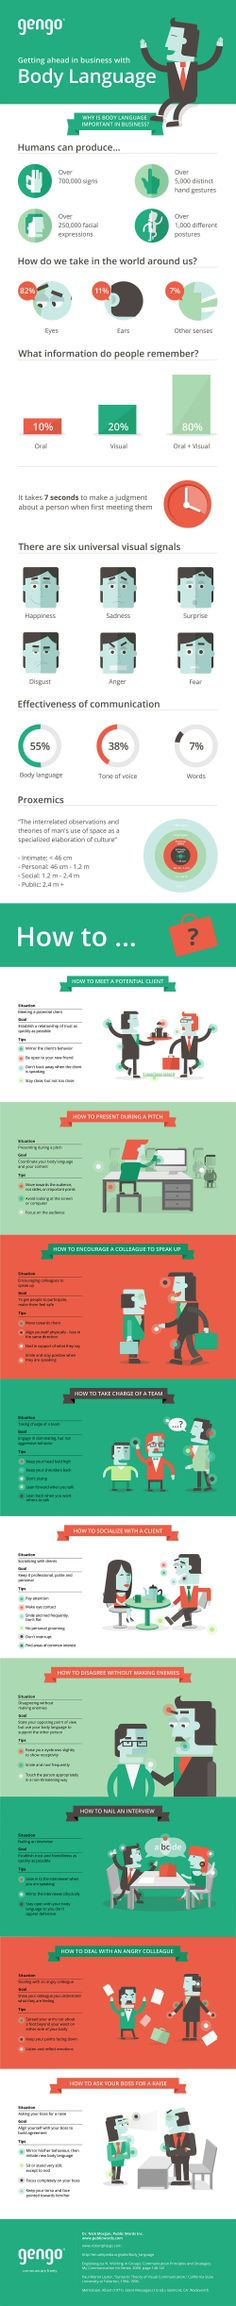 Getting ahead in business with Body Language: Why is body language important in business?